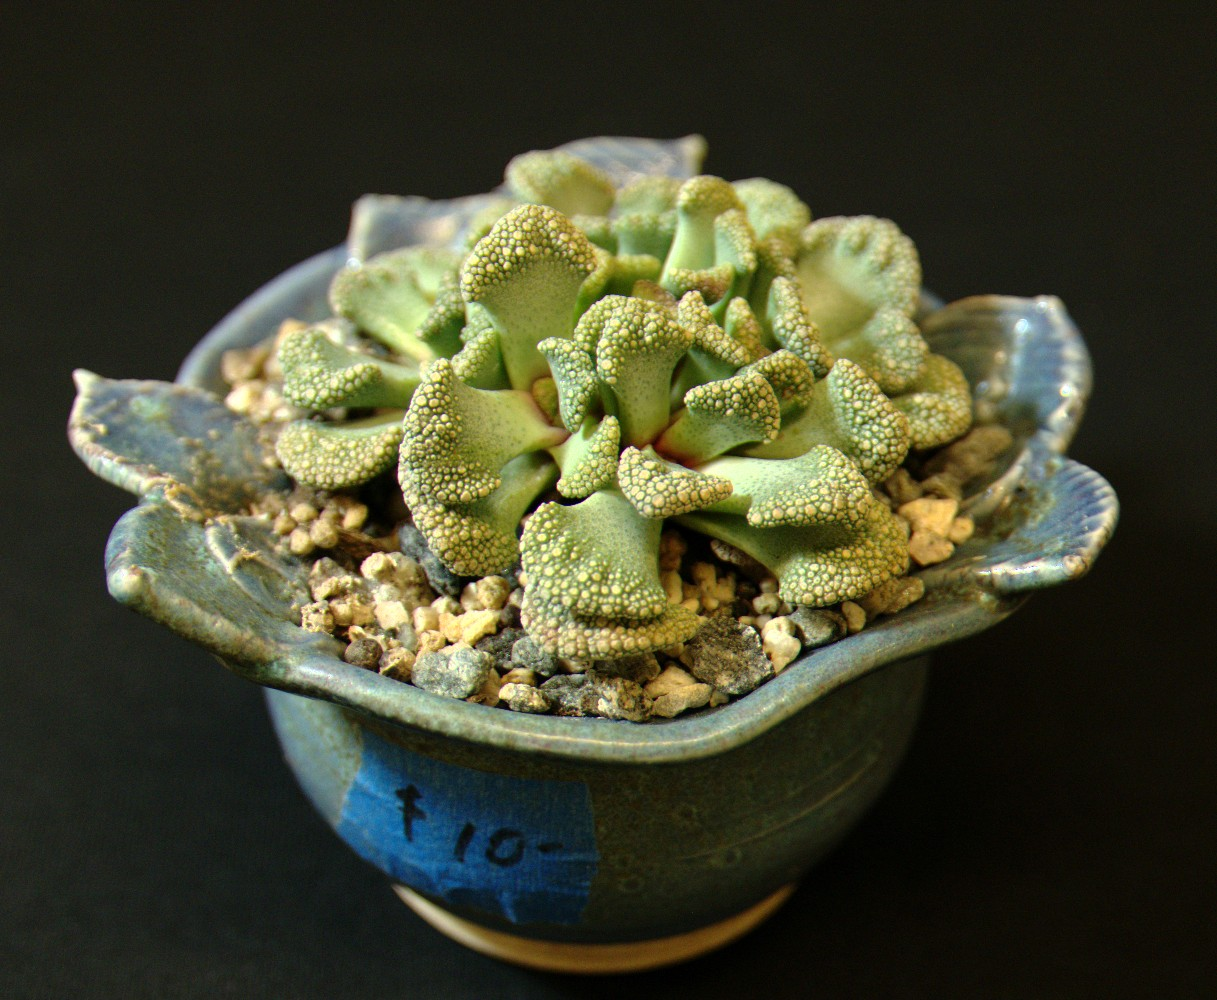 SCCSS 2016 August - Winner Open Succulent - Laurel Woodley - Titanopsis calcarea